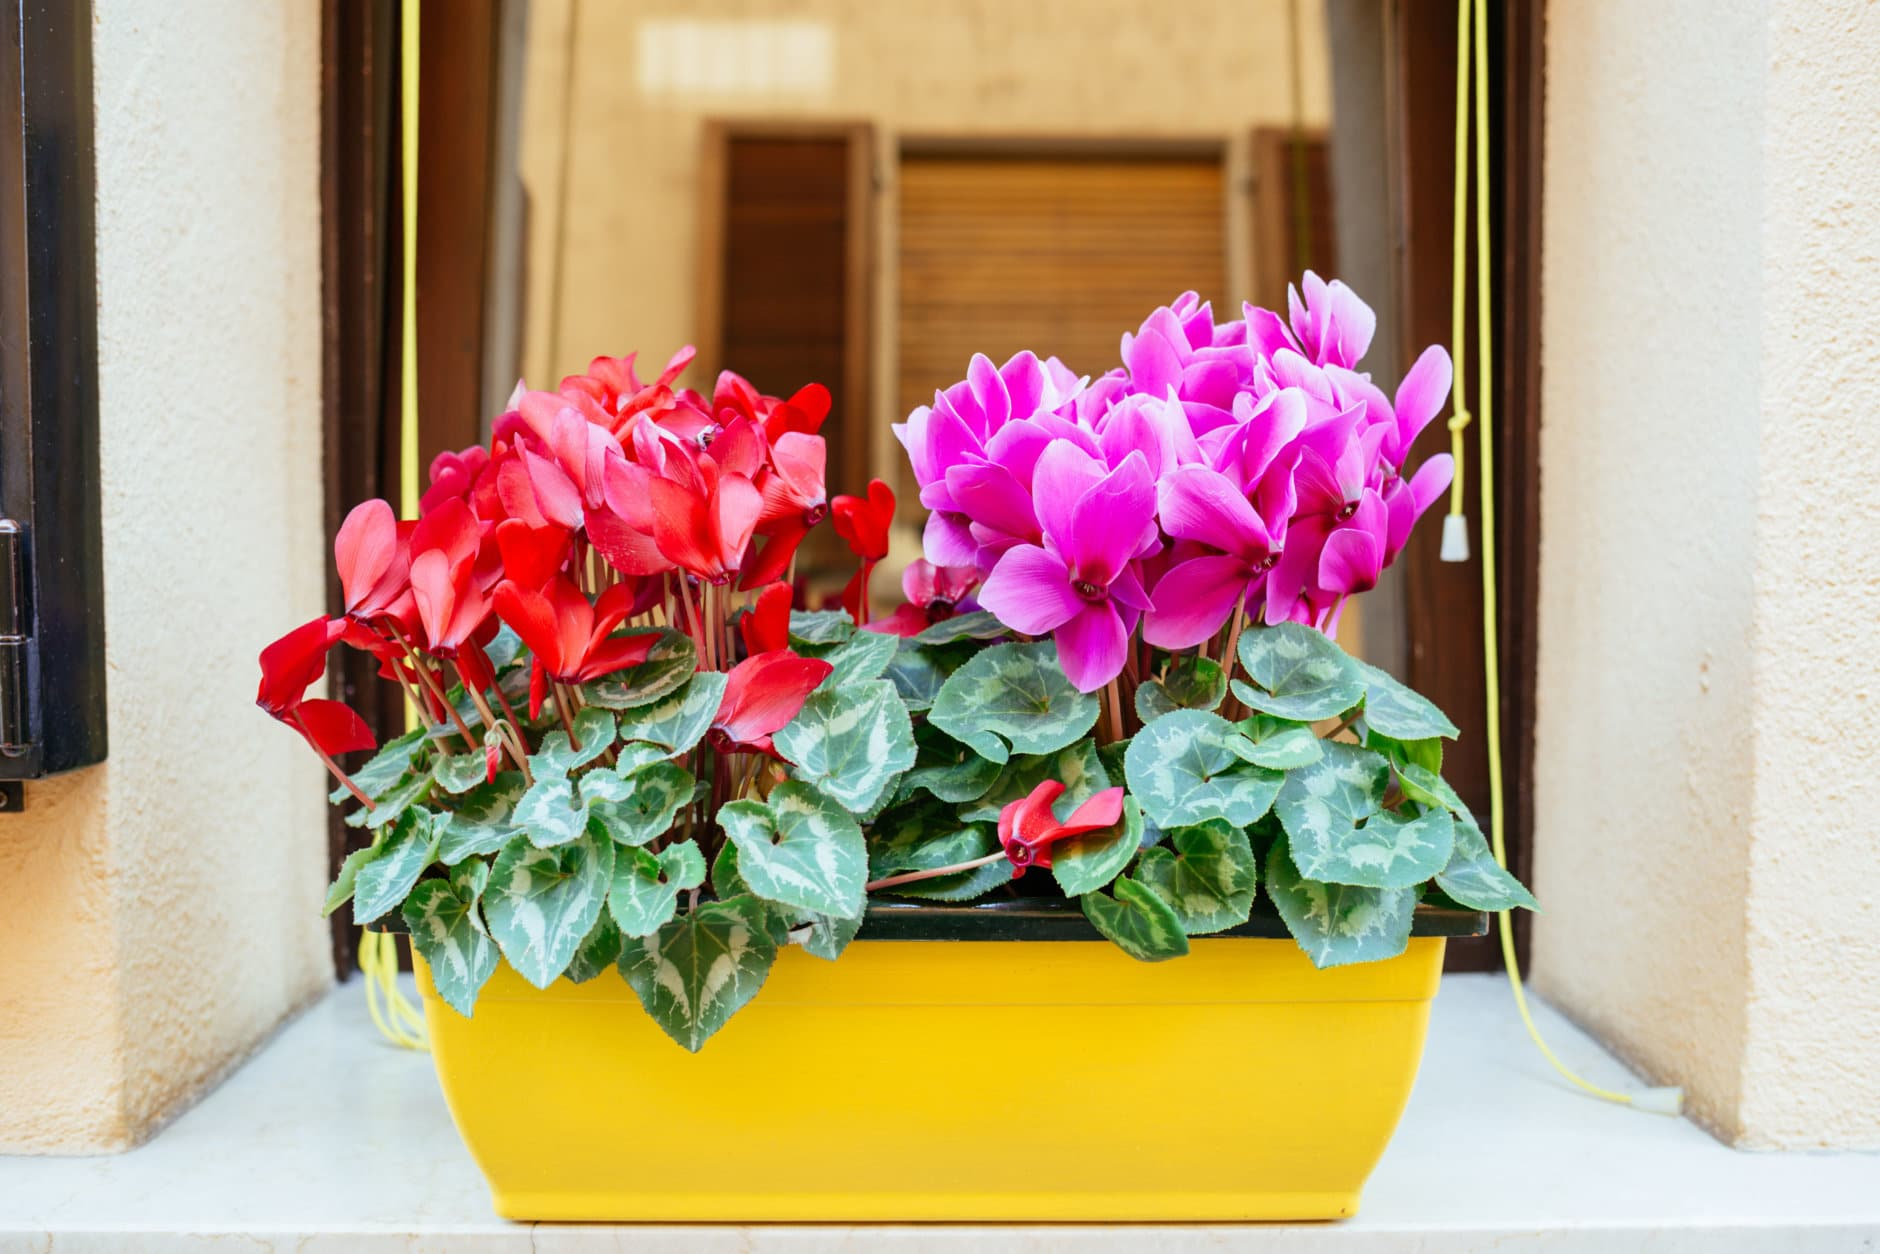 Flower pot with red and pink bright cyclamen on the .indow sill.